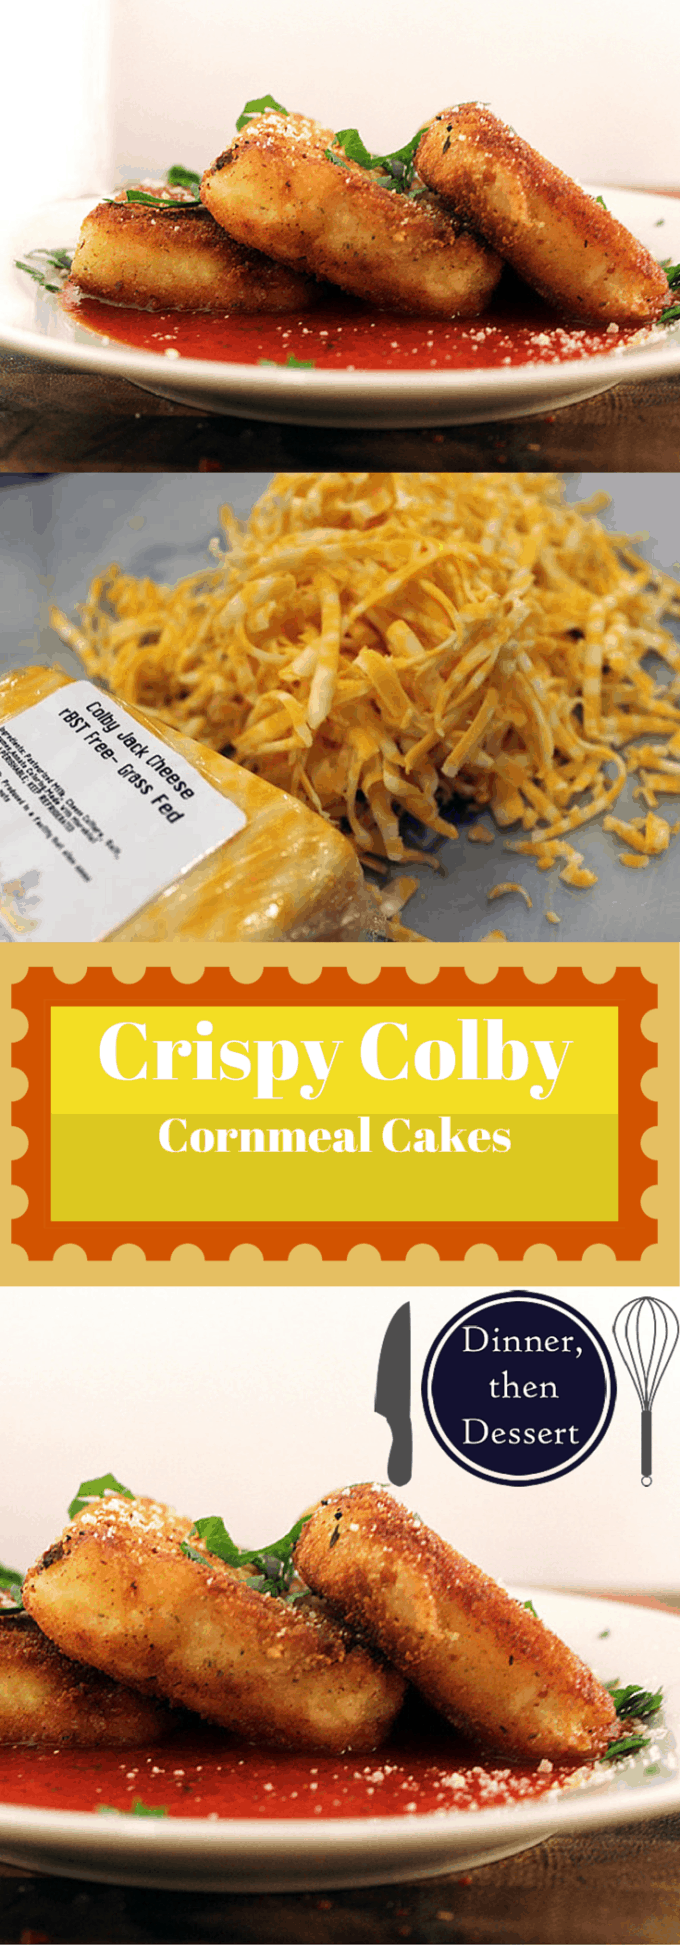 Colby Cornmeal Cakes collage